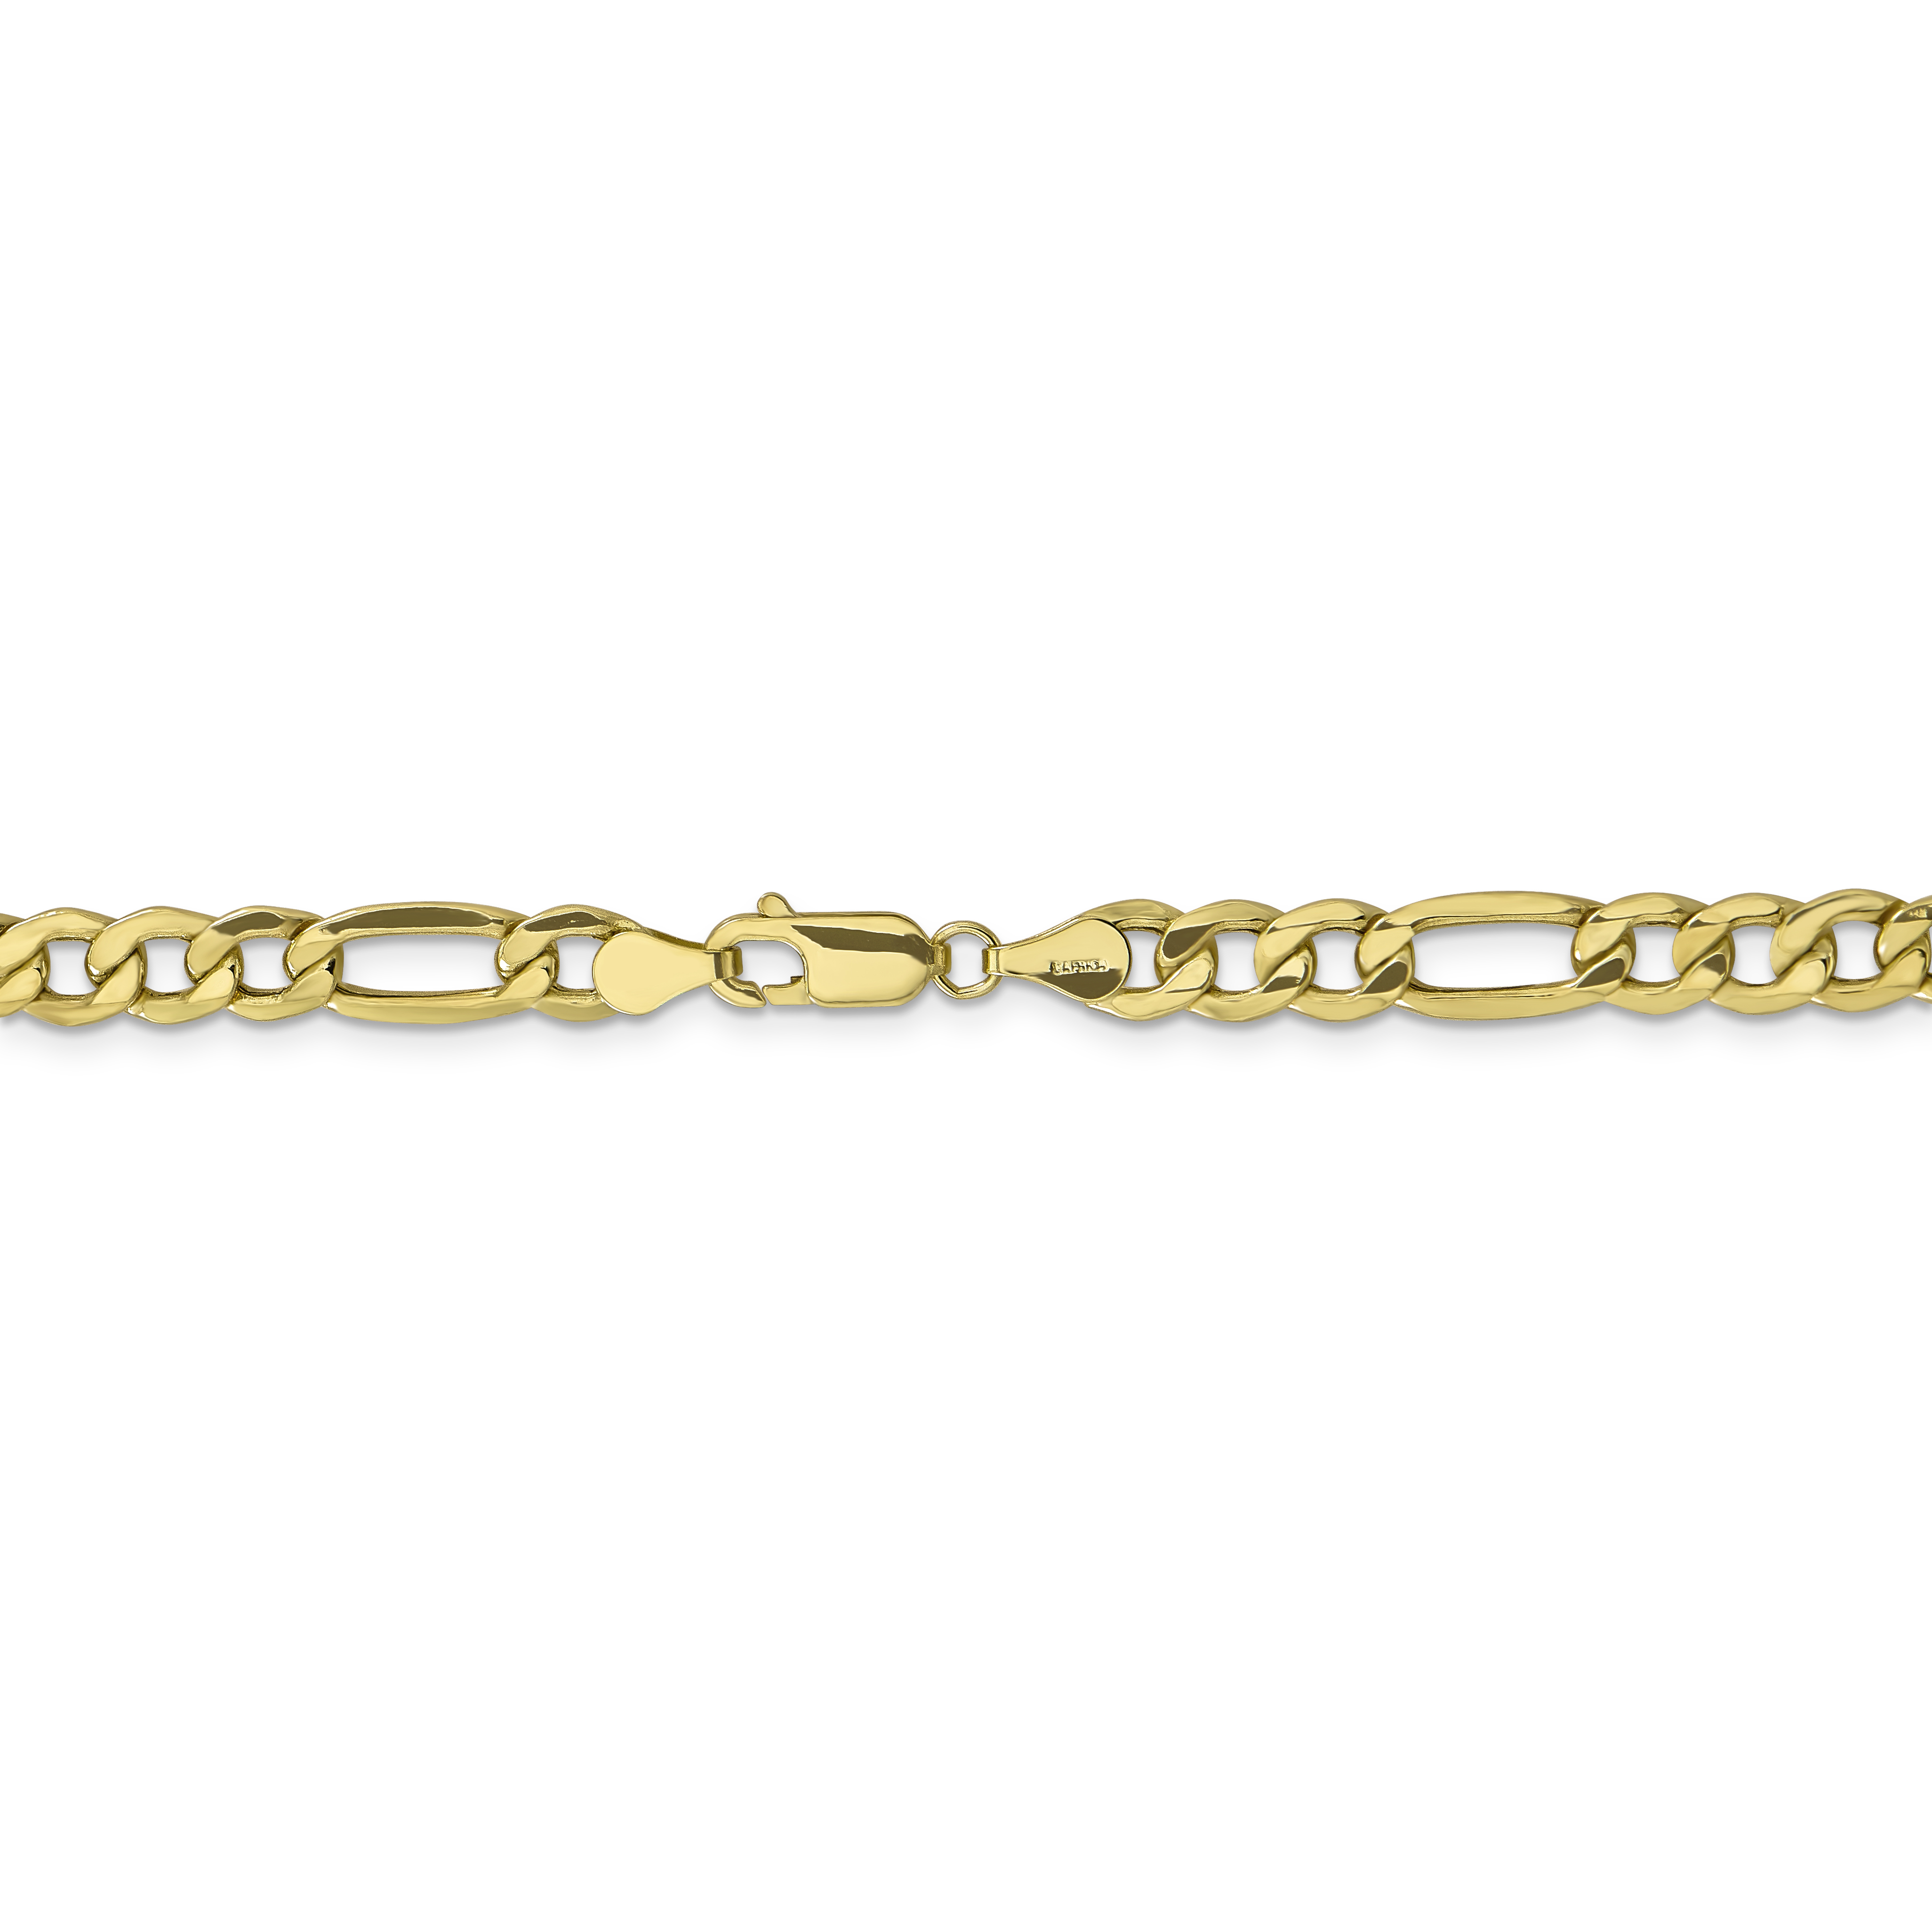 10K Yellow Gold 6mm Semi-Solid Figaro Chain 24 IN - image 1 of 5